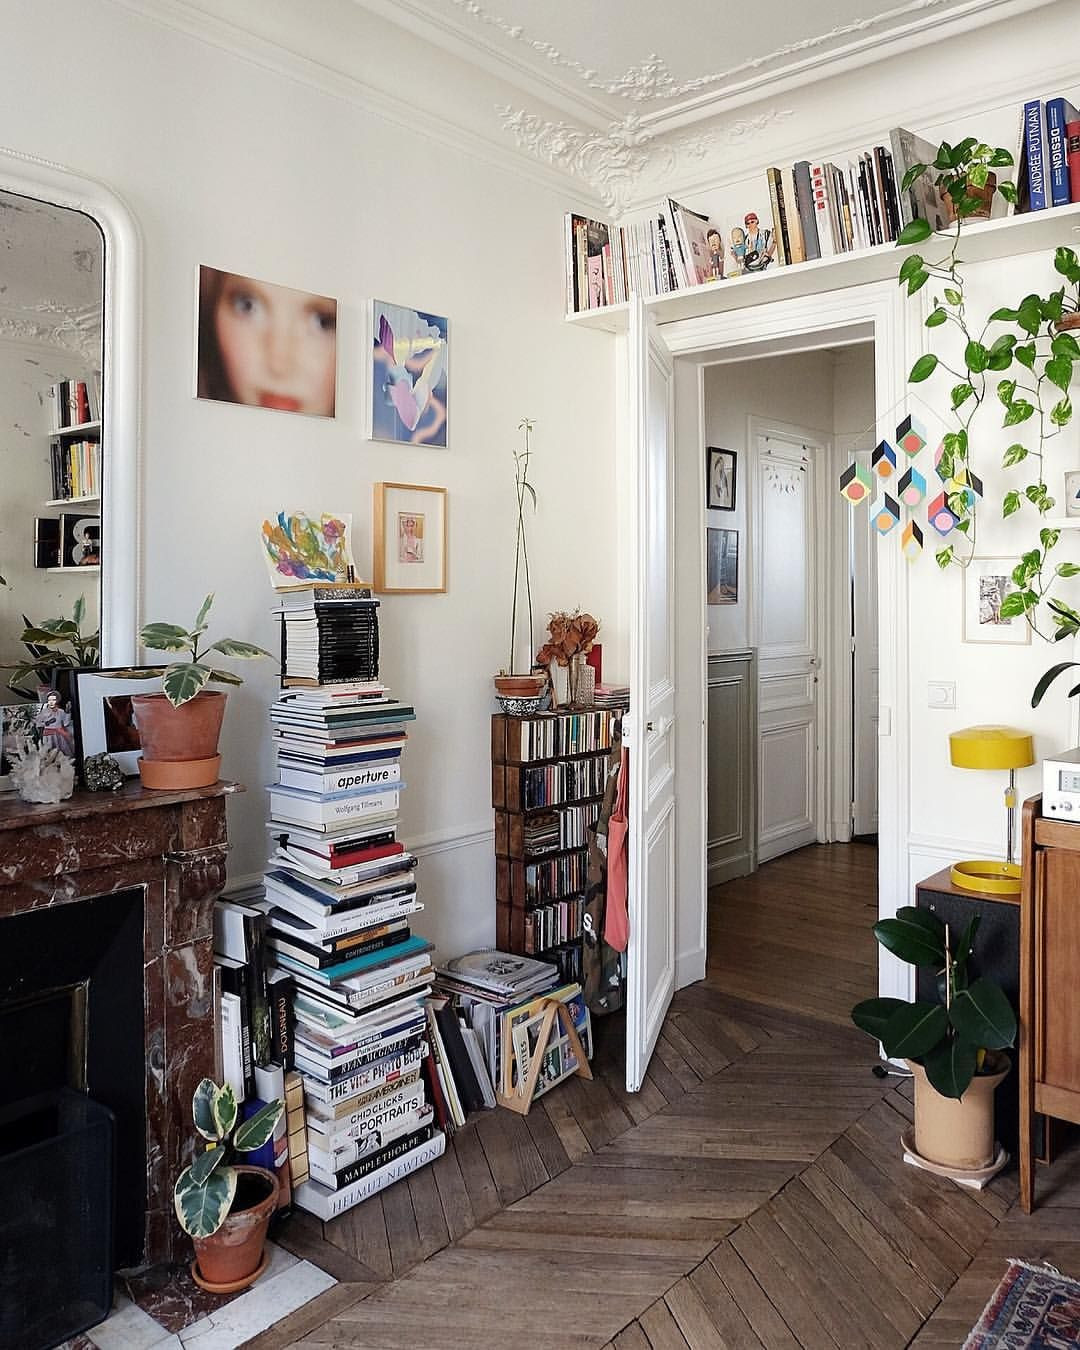 walsh hardwood flooring reviews of pin by sofia davila on stuff to buy pinterest apartments cozy regarding pin by sofia davila on stuff to buy pinterest apartments cozy place and apartment living